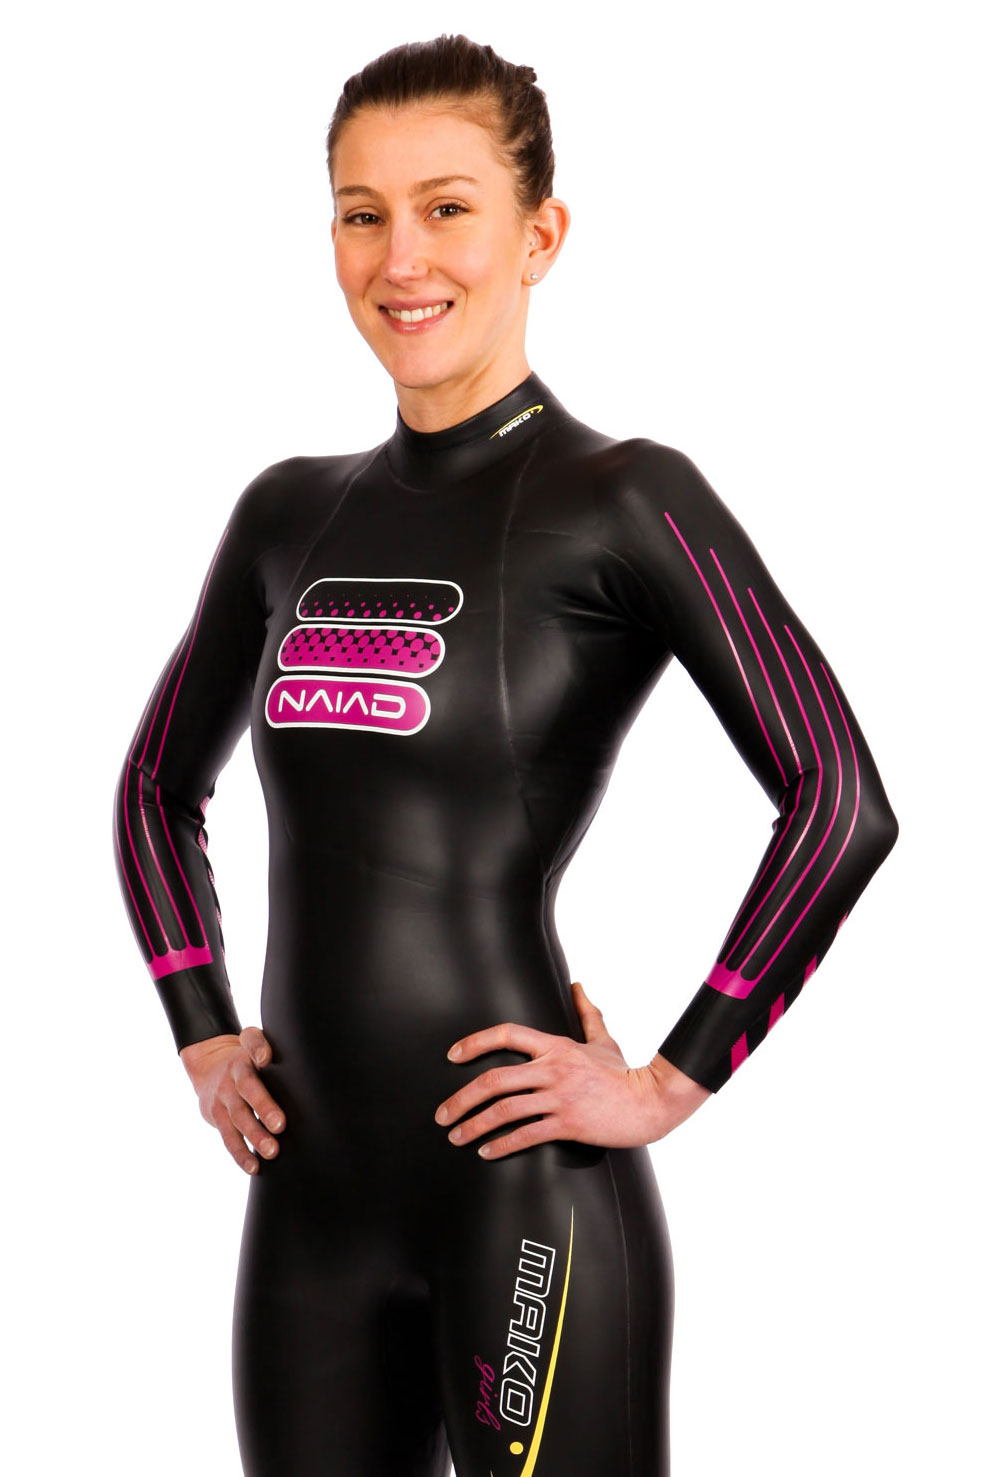 Buy Naiad Woman Wetsuit At Makonordic